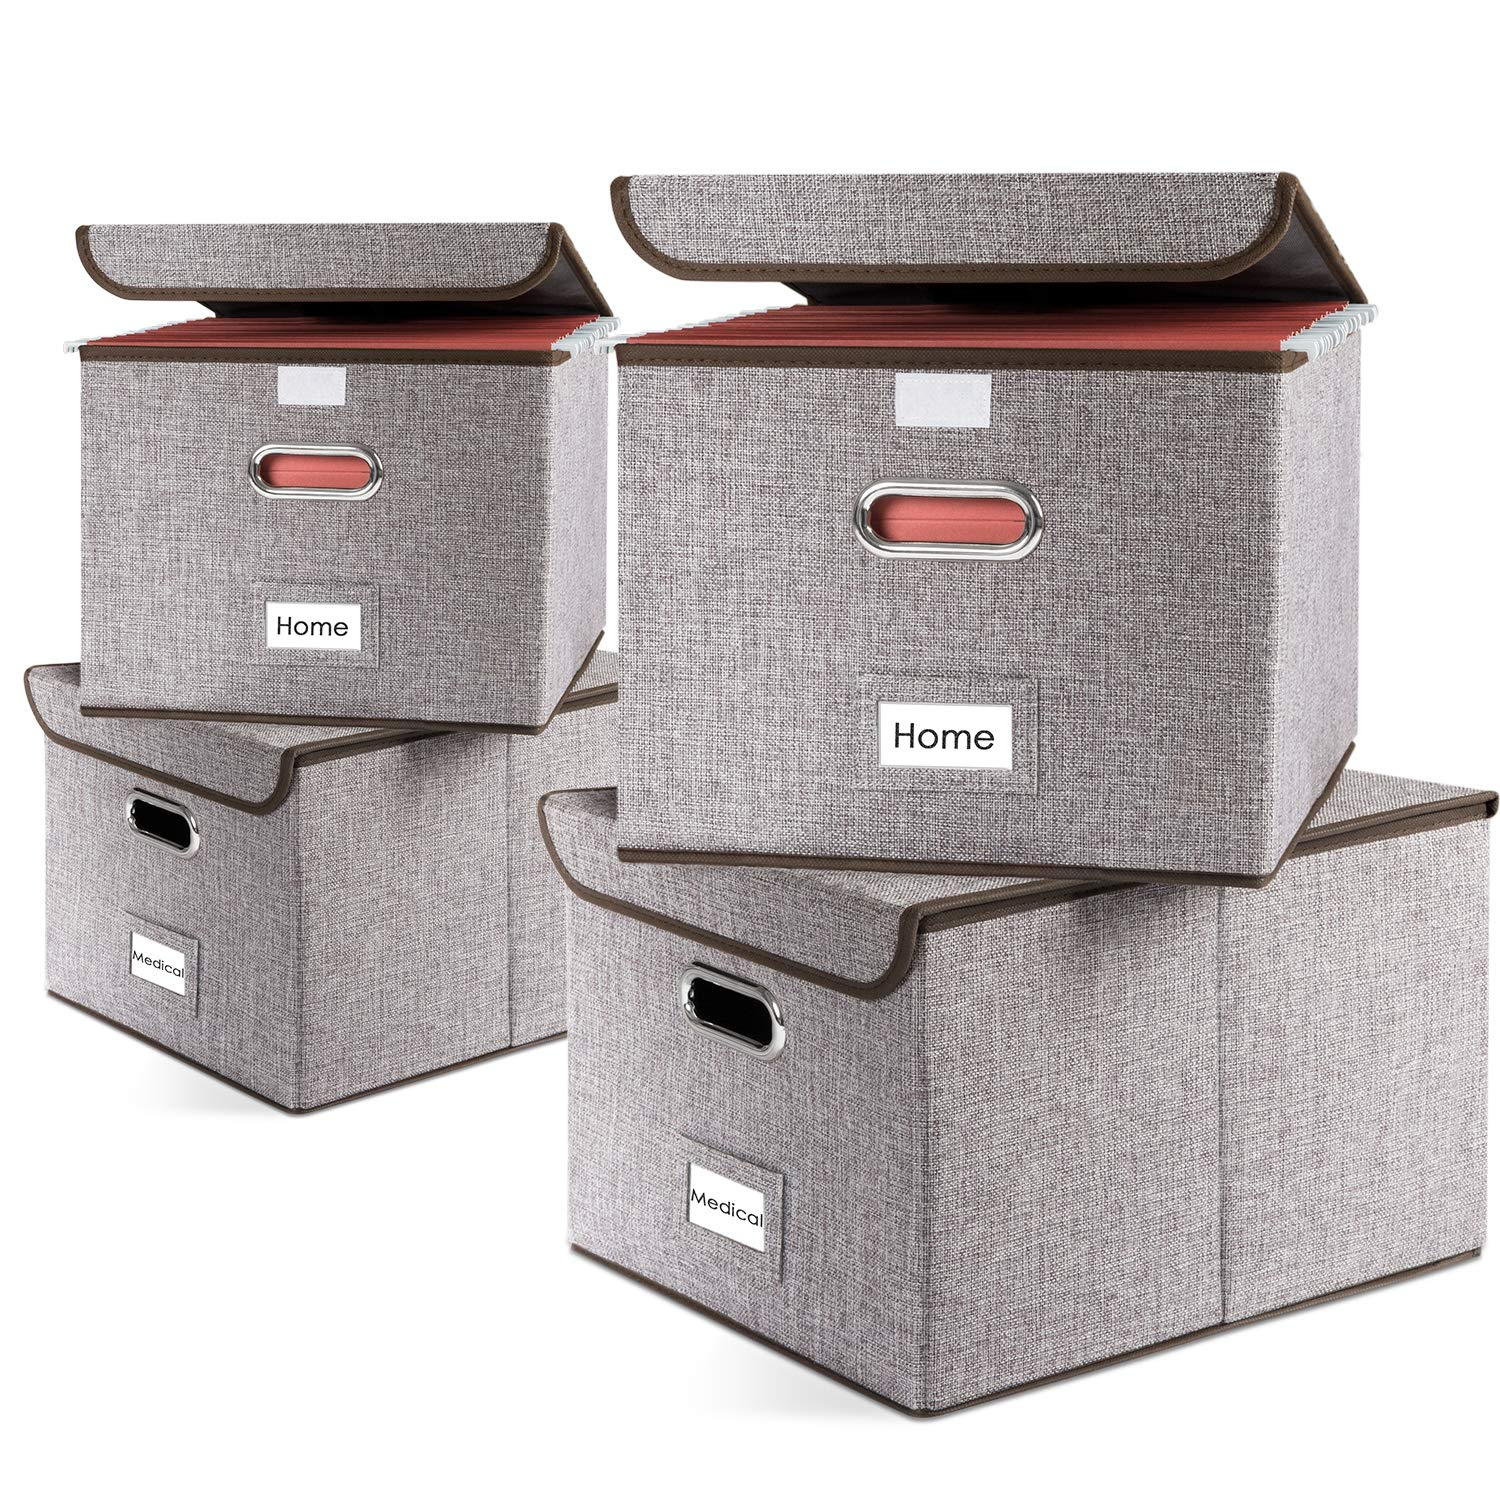 Prandom File Organizer Boxes Set of 4 Collapsible Decorative Linen Storage Hanging Filing Folders with Lids Office Letter Size Gray by Prandom